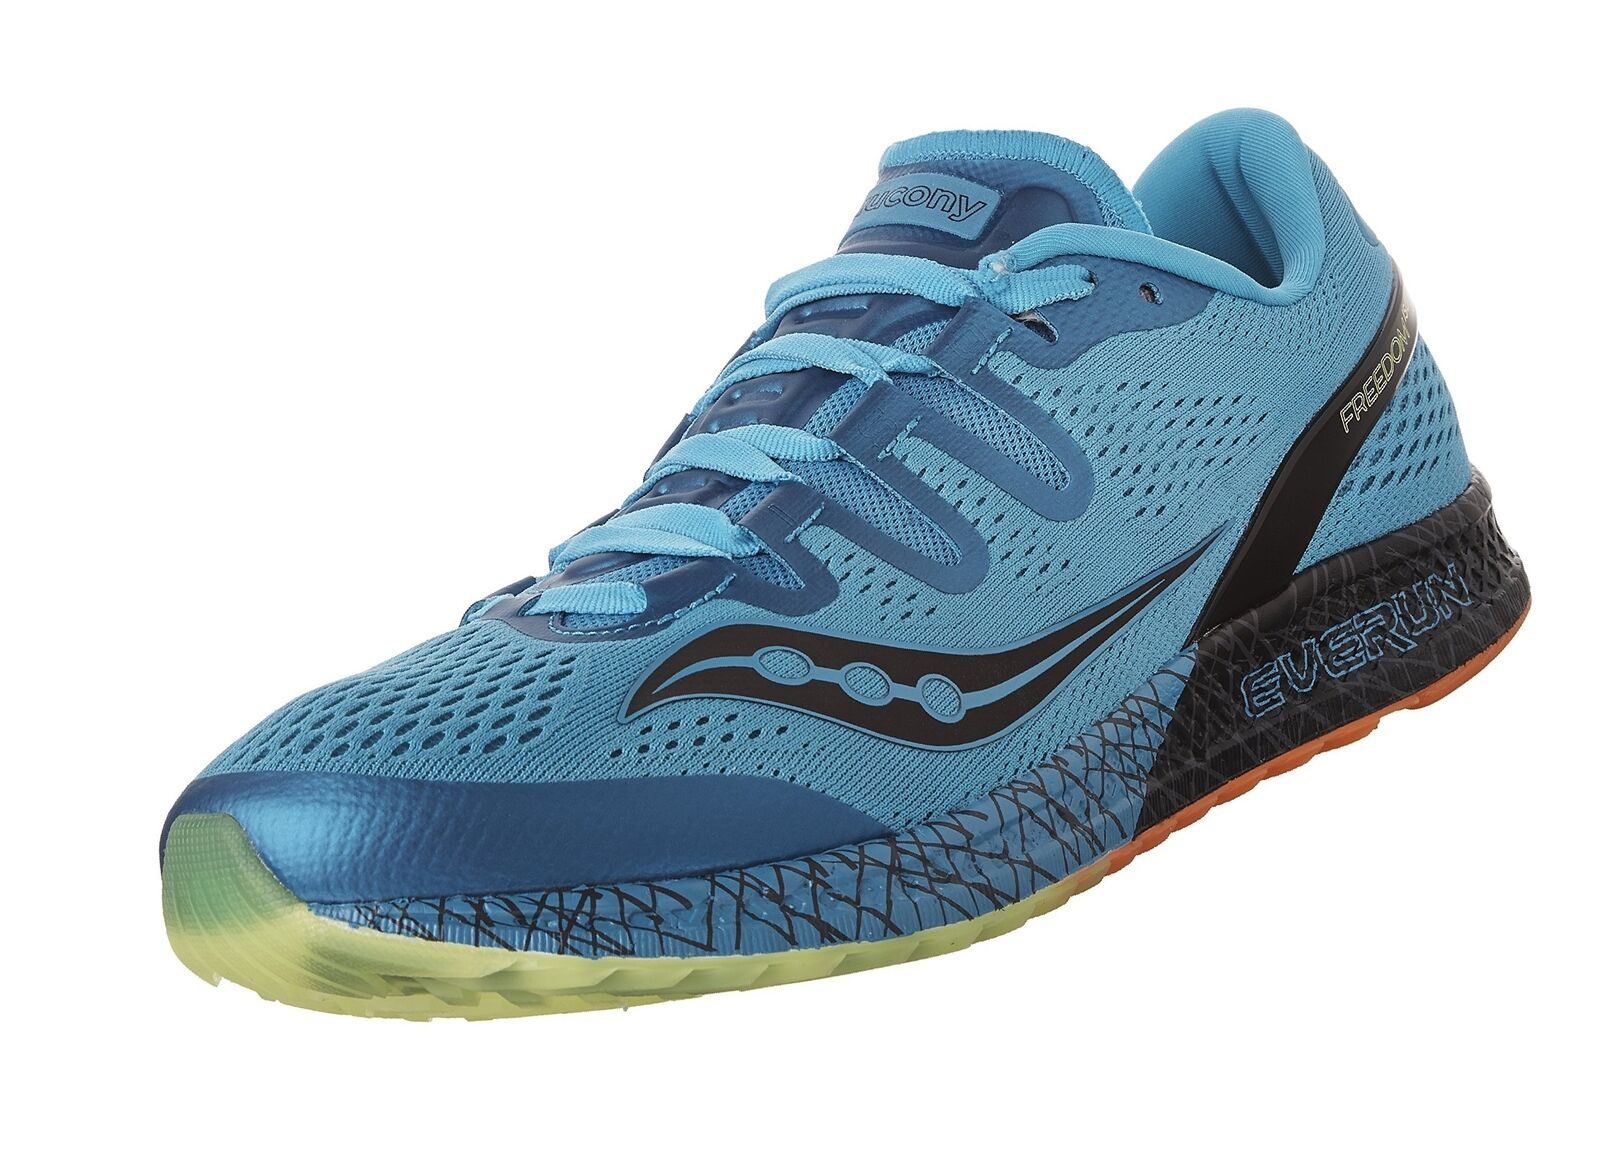 Saucony Men's Freedom ISO Running shoes bluee Citron 9 M US